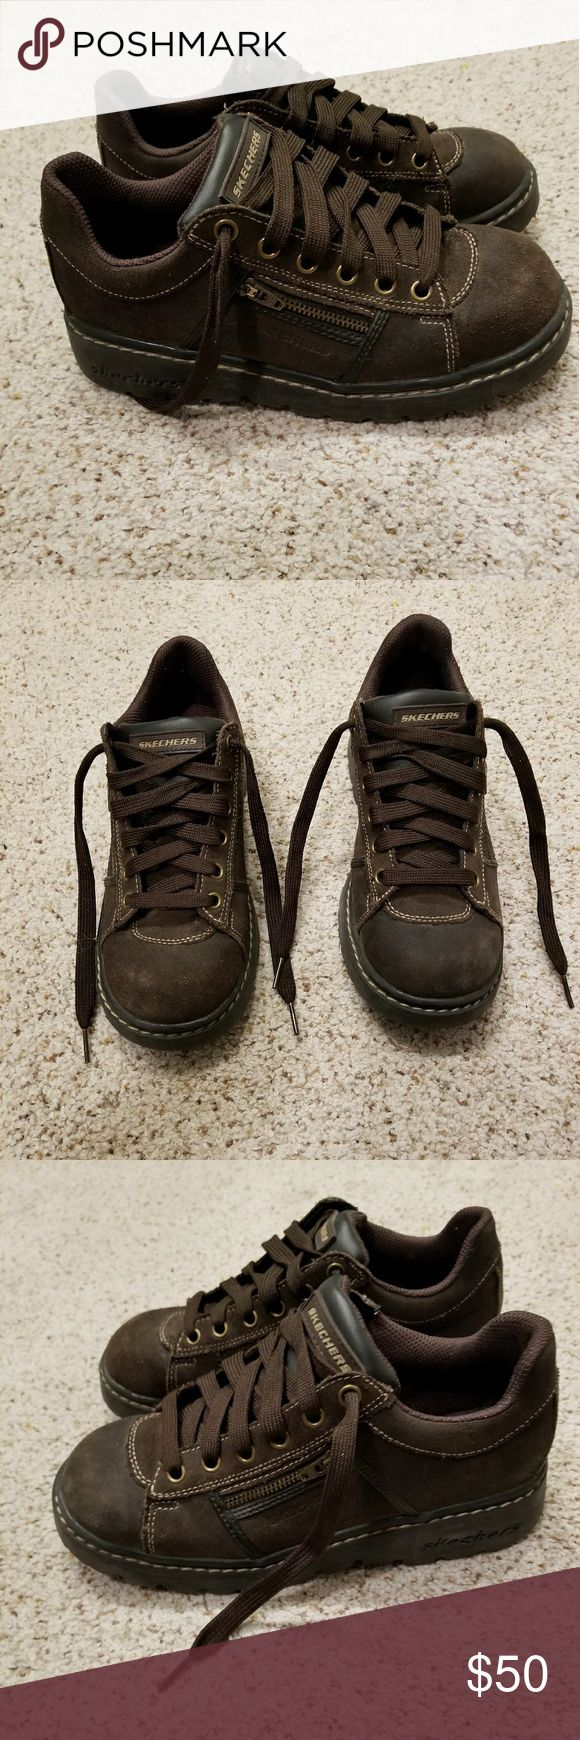 Skechers lace up sneakers Good condition brown lace up skechers shoes. Slight wear in toe area as can see in pictures but not that bad. Still have a lot of life in them. Cute side zipper detail. Skechers Shoes